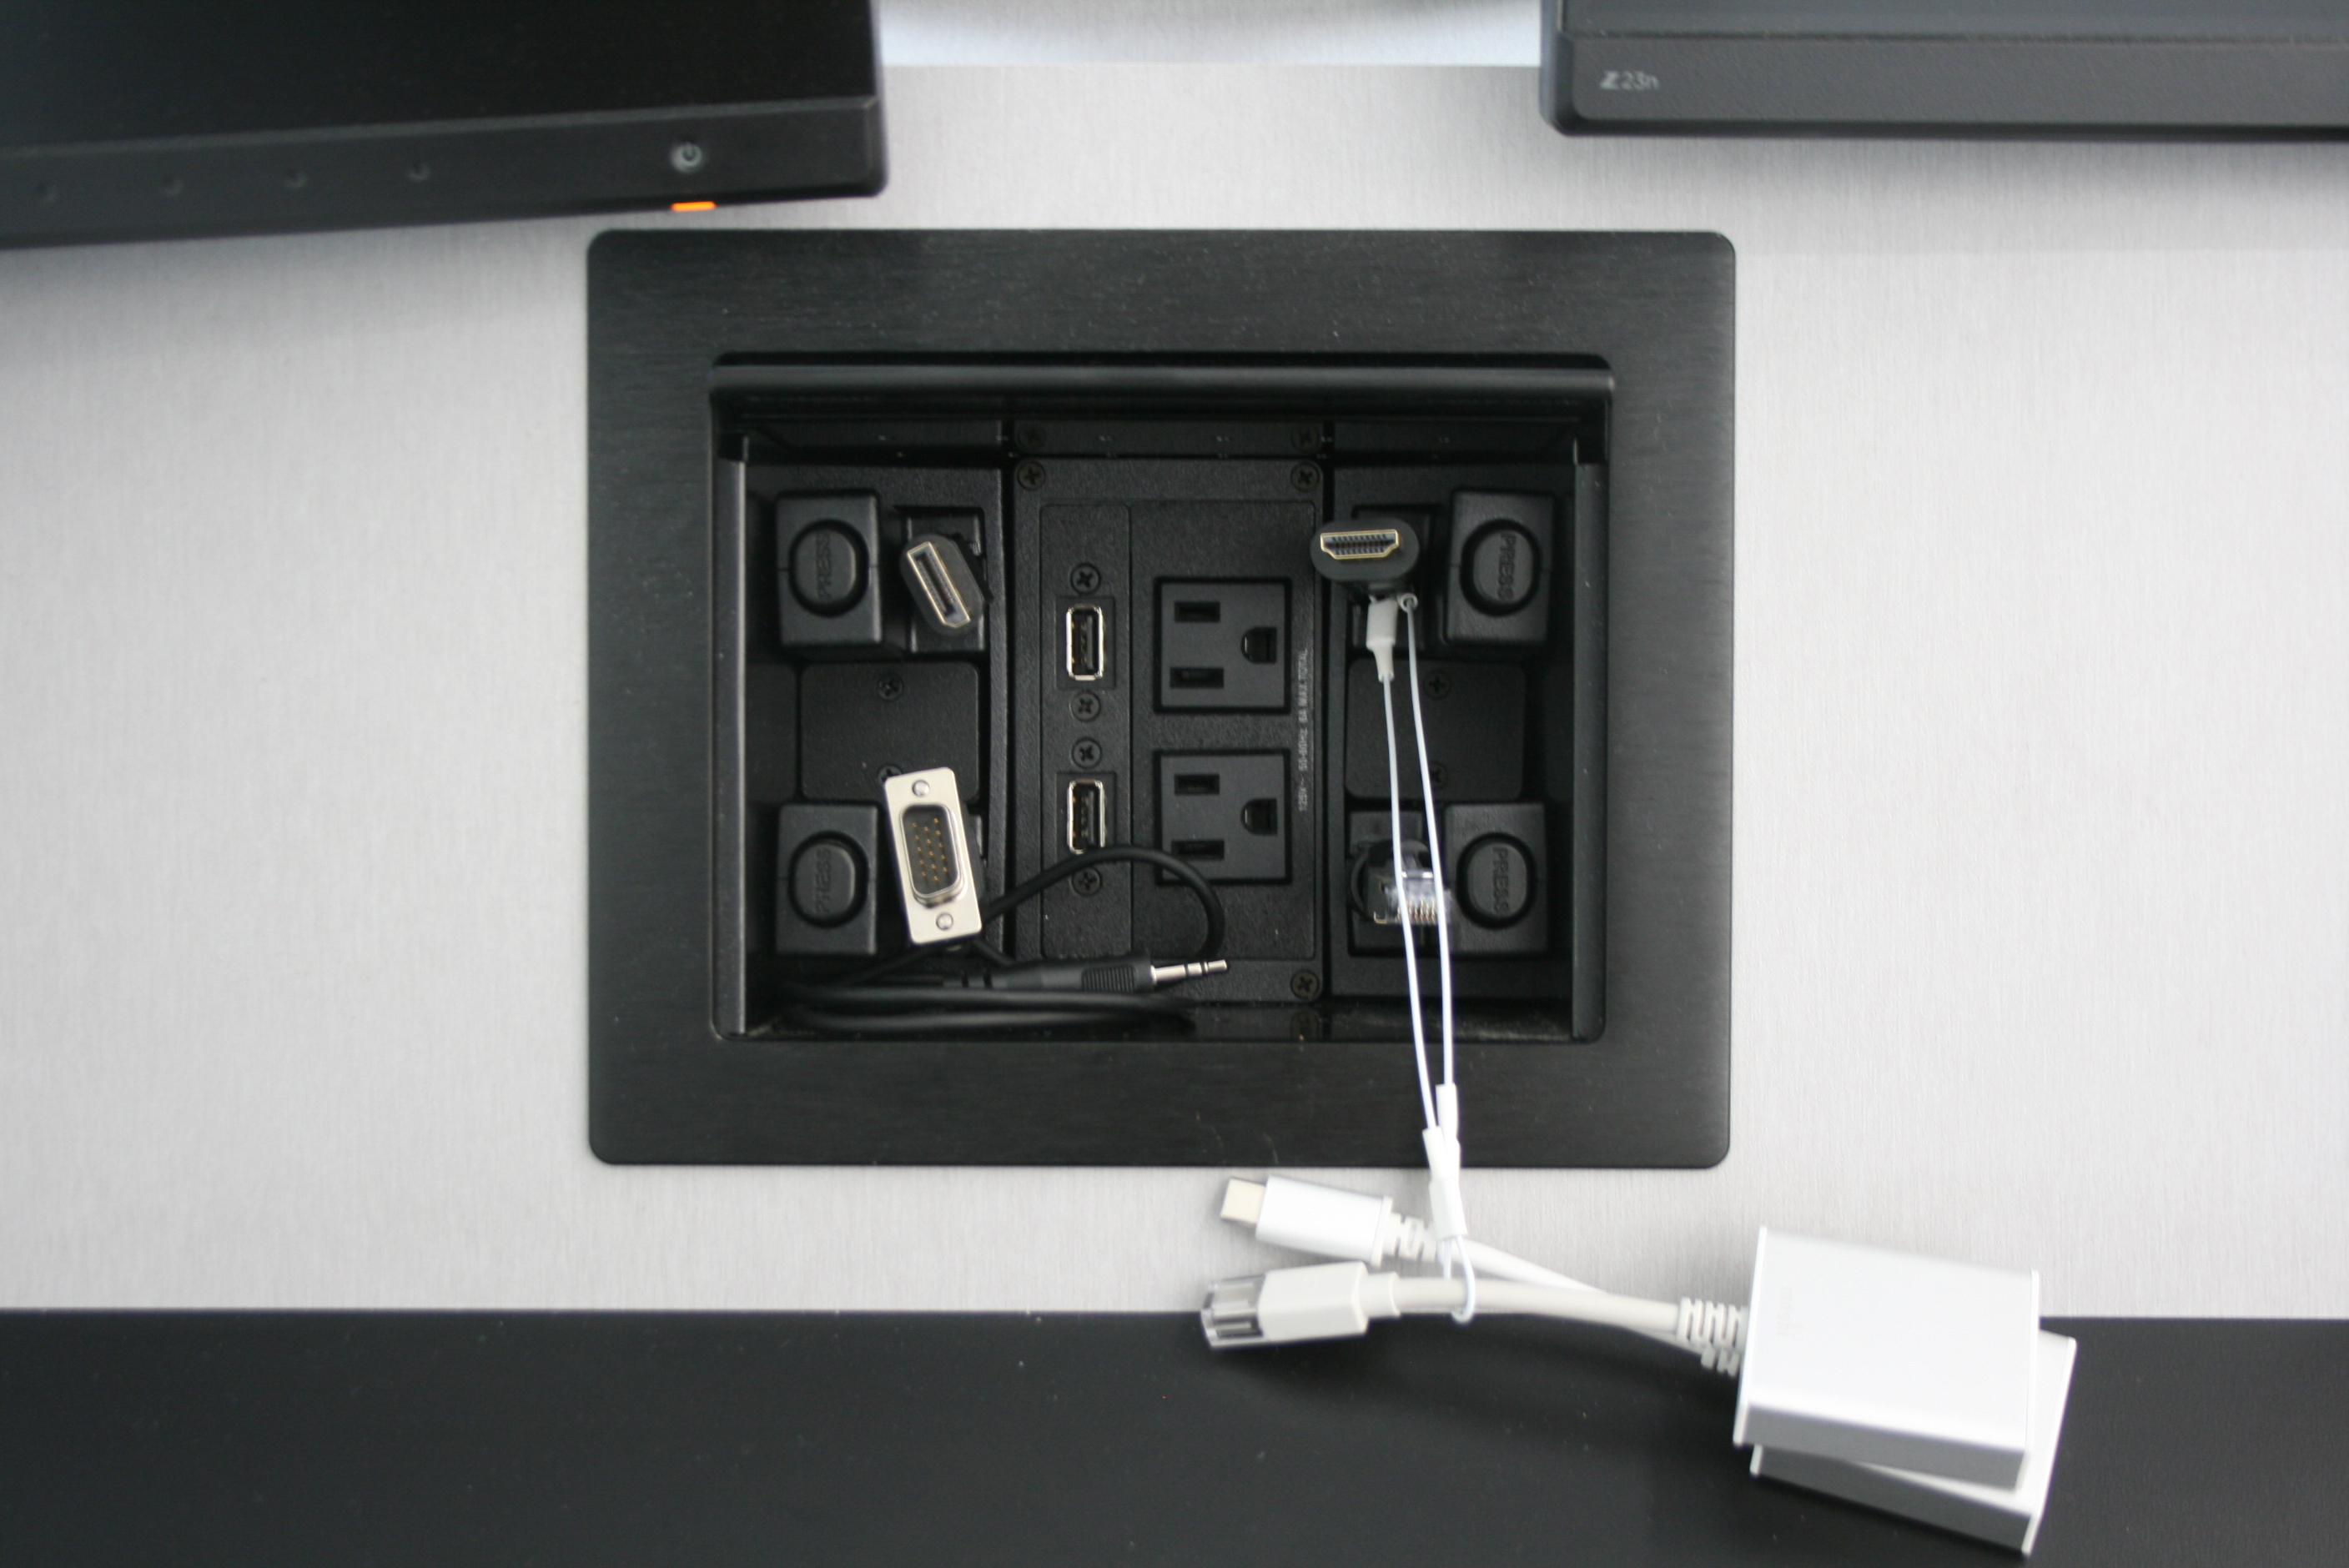 Instructors can connect a portable devices at the teaching station using cables fed through an integrated Extron Cable Cubby<sup>®</sup> enclosure paired with Retractor<sup>®</sup> cable retractiong and management modules.